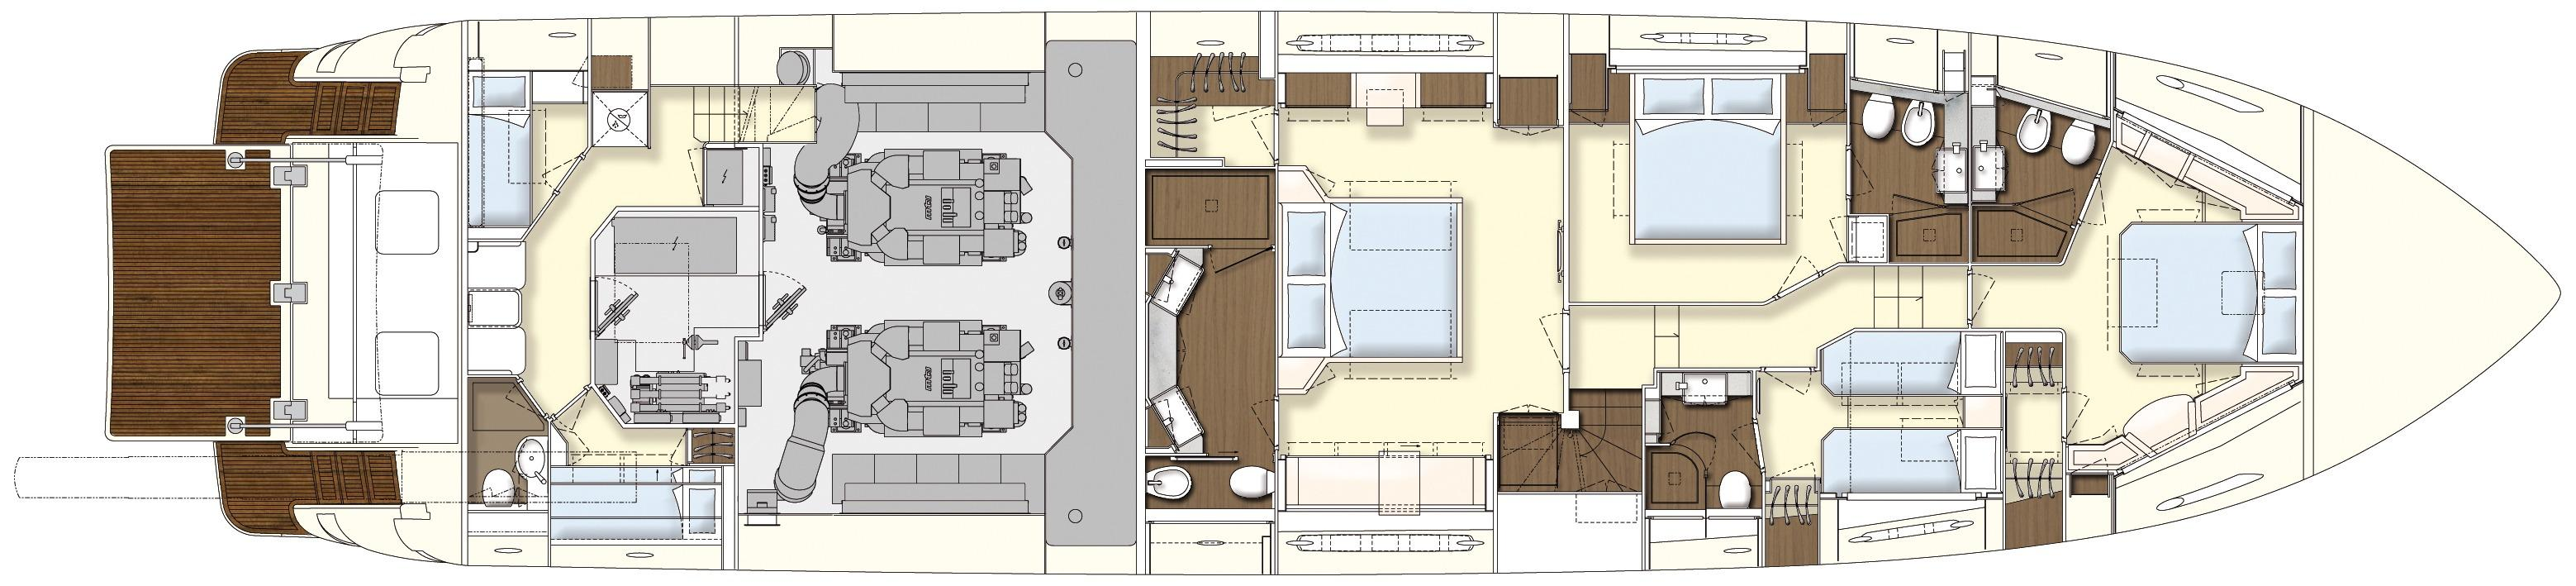 Manufacturer Provided Image: Ferretti 870 Lower Deck Layout Plan